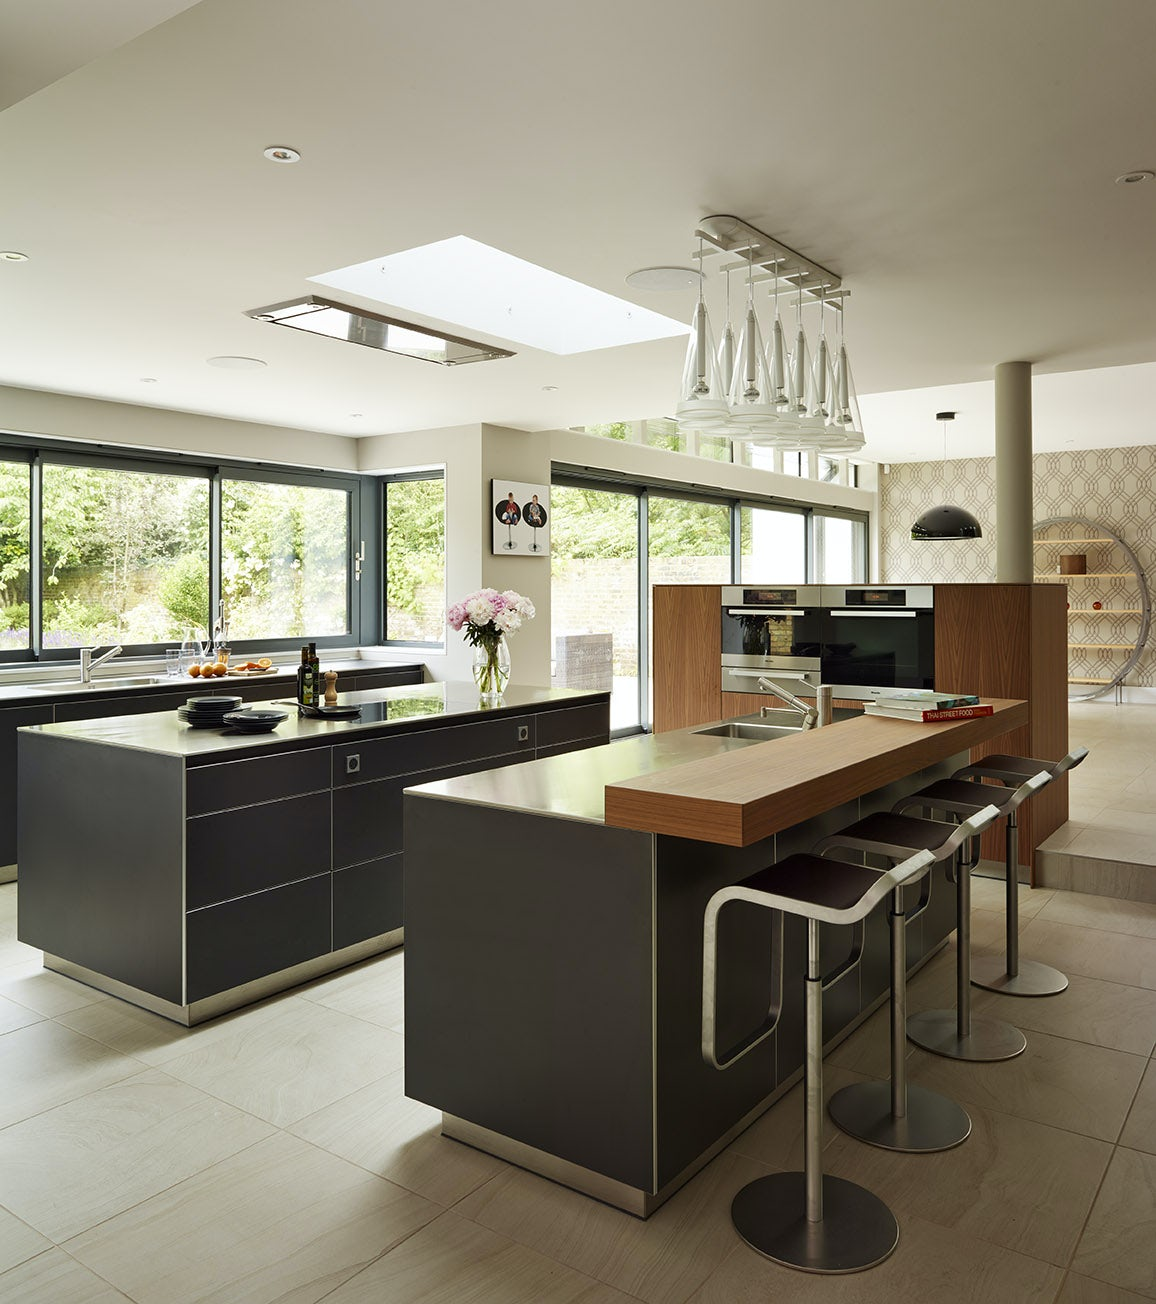 Island Living: Kitchen Architecture's Bulthaup B3